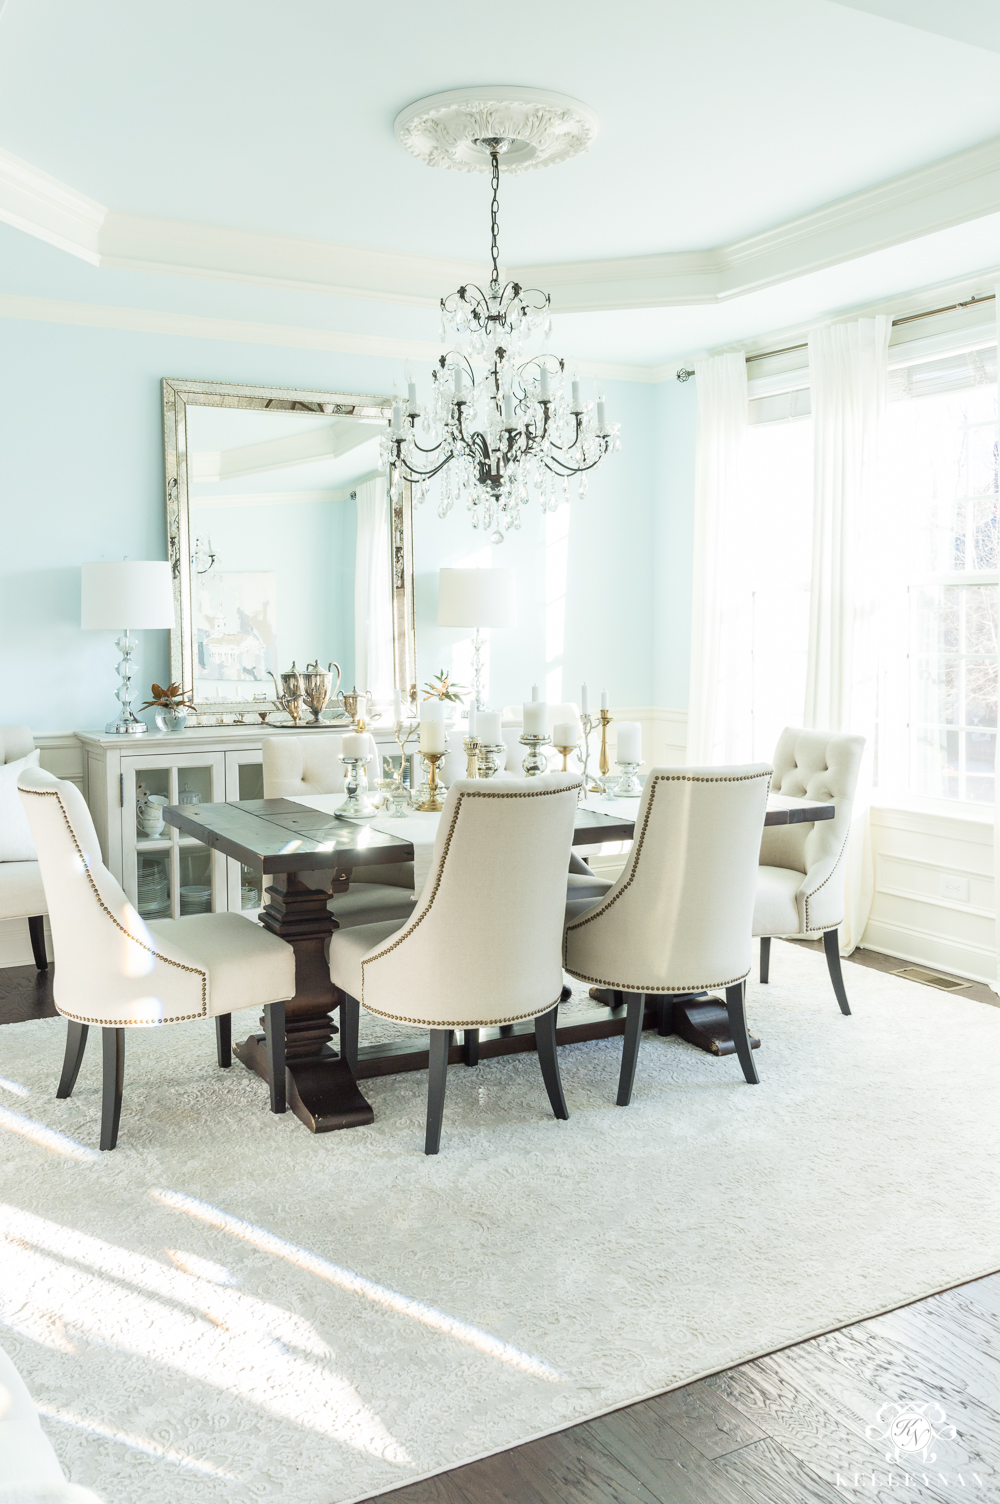 Elegant blue dining room design with cream chairs and crystal chandelier